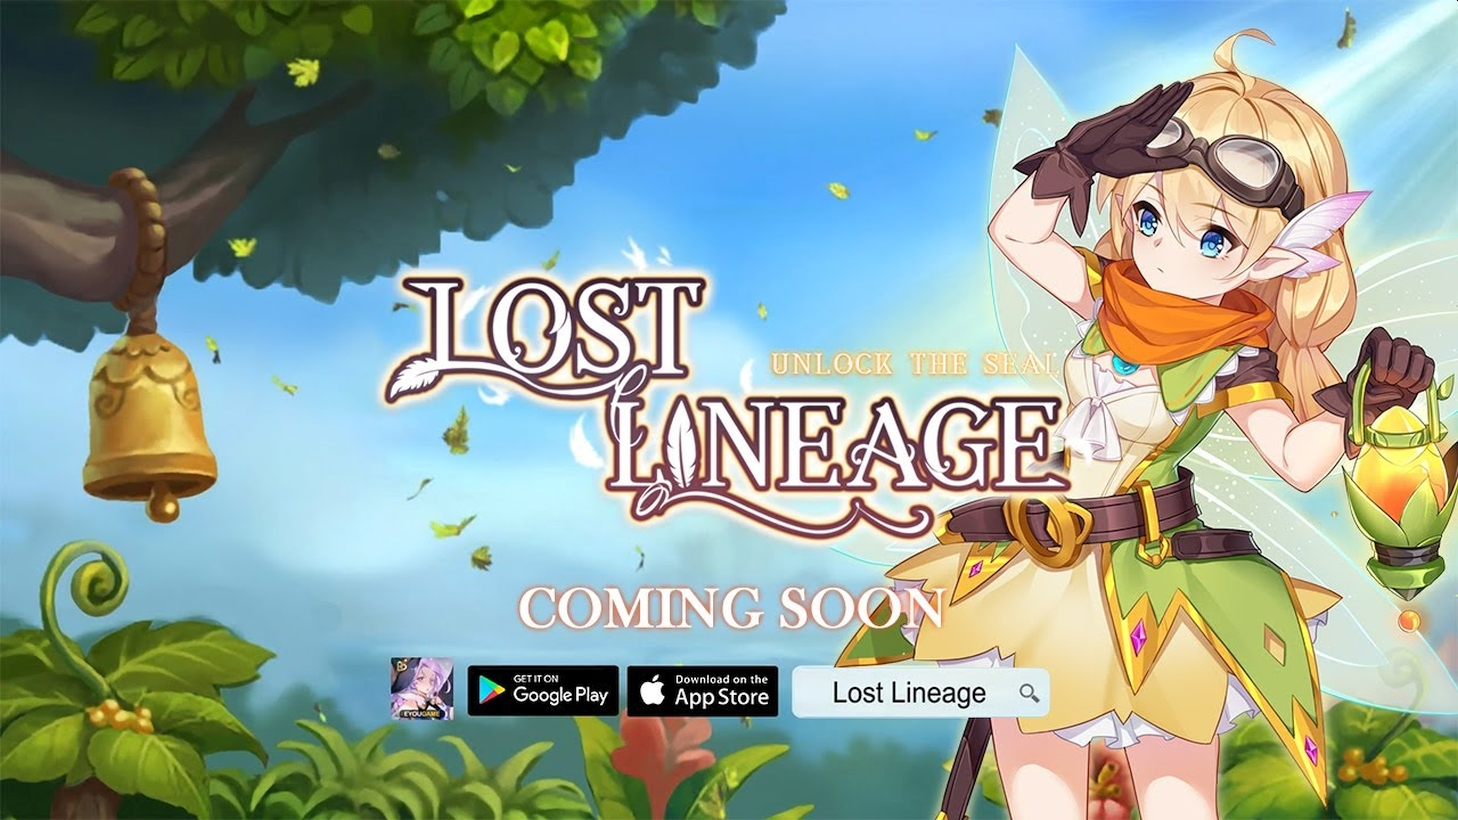 EYOUGAME Announces Global Launch Of MMOARPG Lost Lineage On Mobile